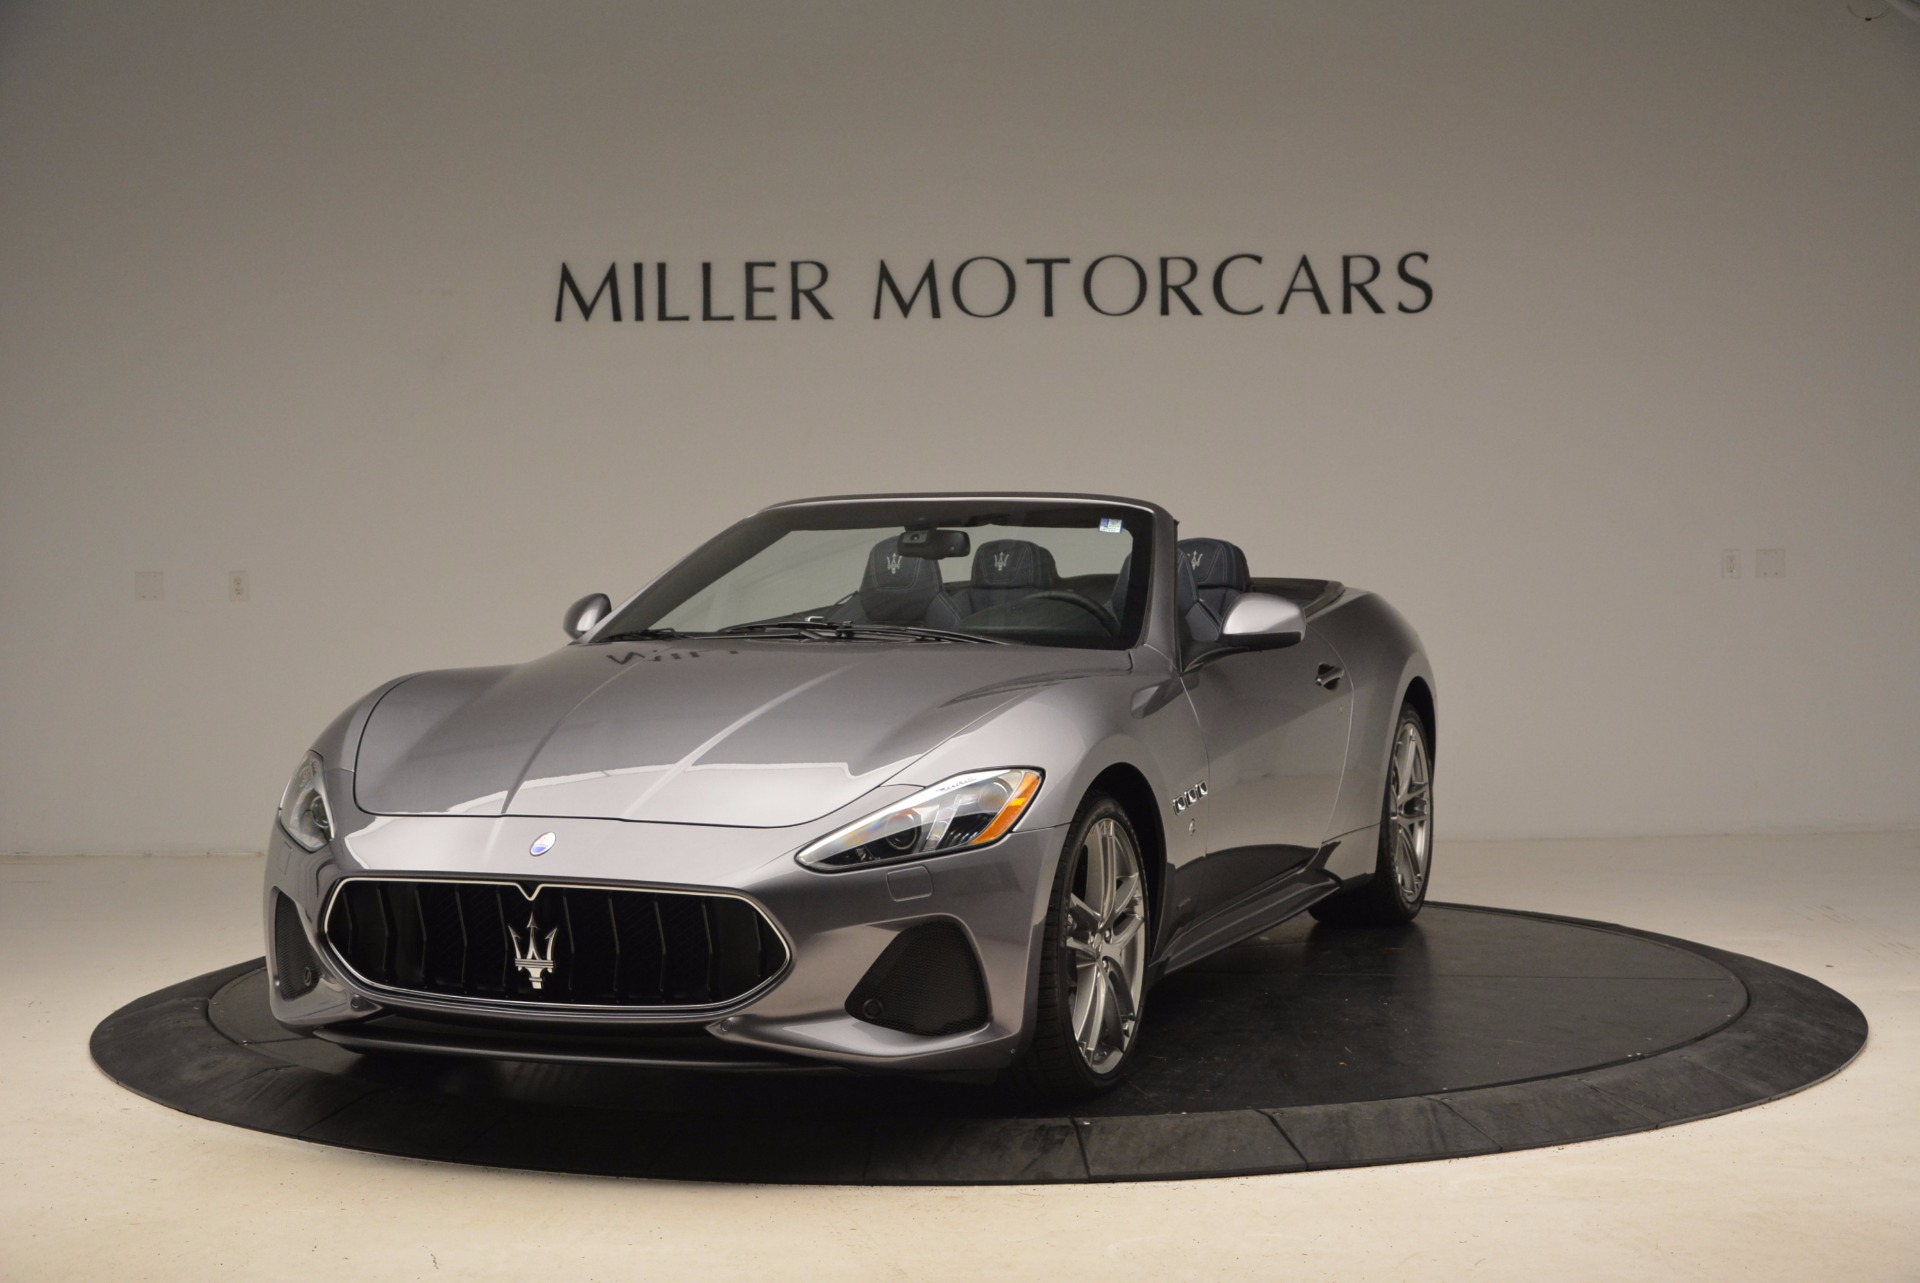 New 2018 Maserati GranTurismo Sport Convertible for sale Sold at Pagani of Greenwich in Greenwich CT 06830 1